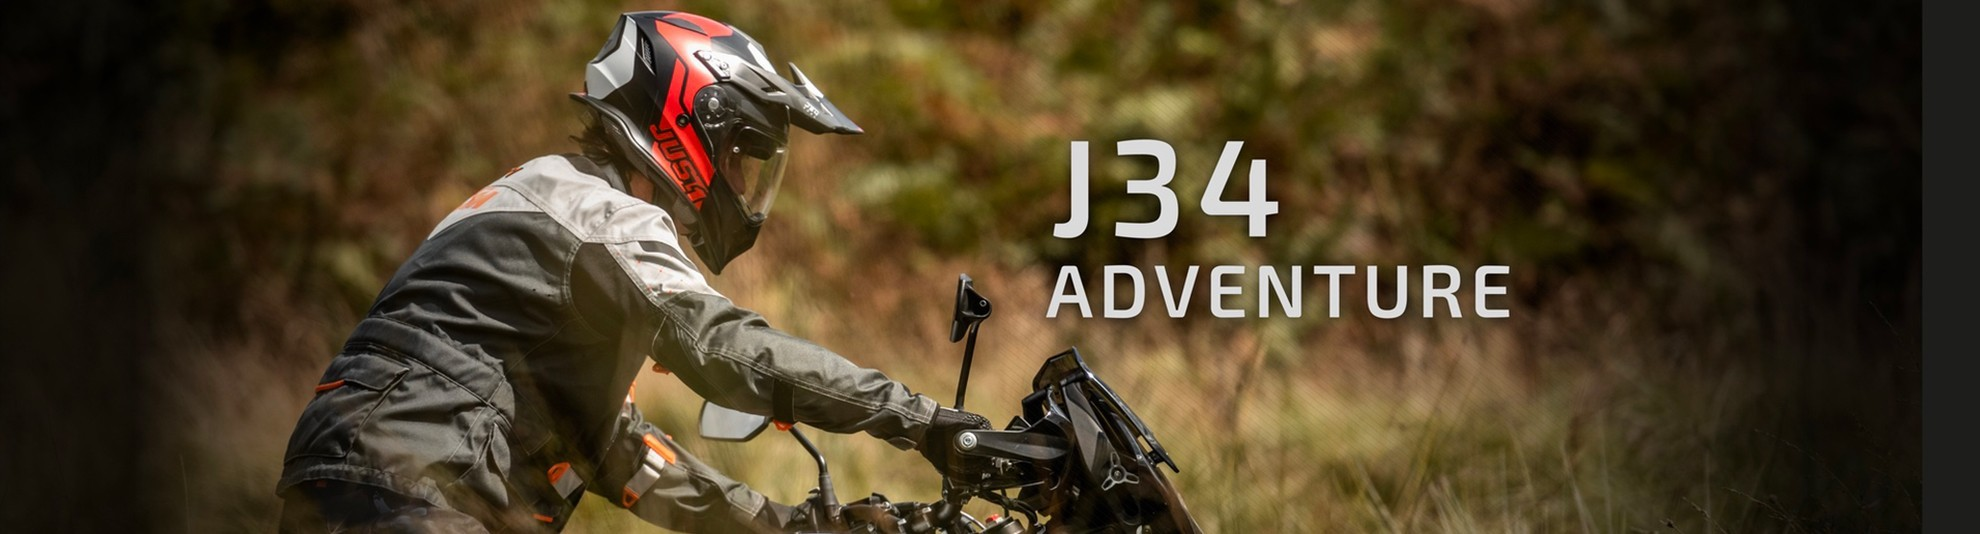 J34 - ABS